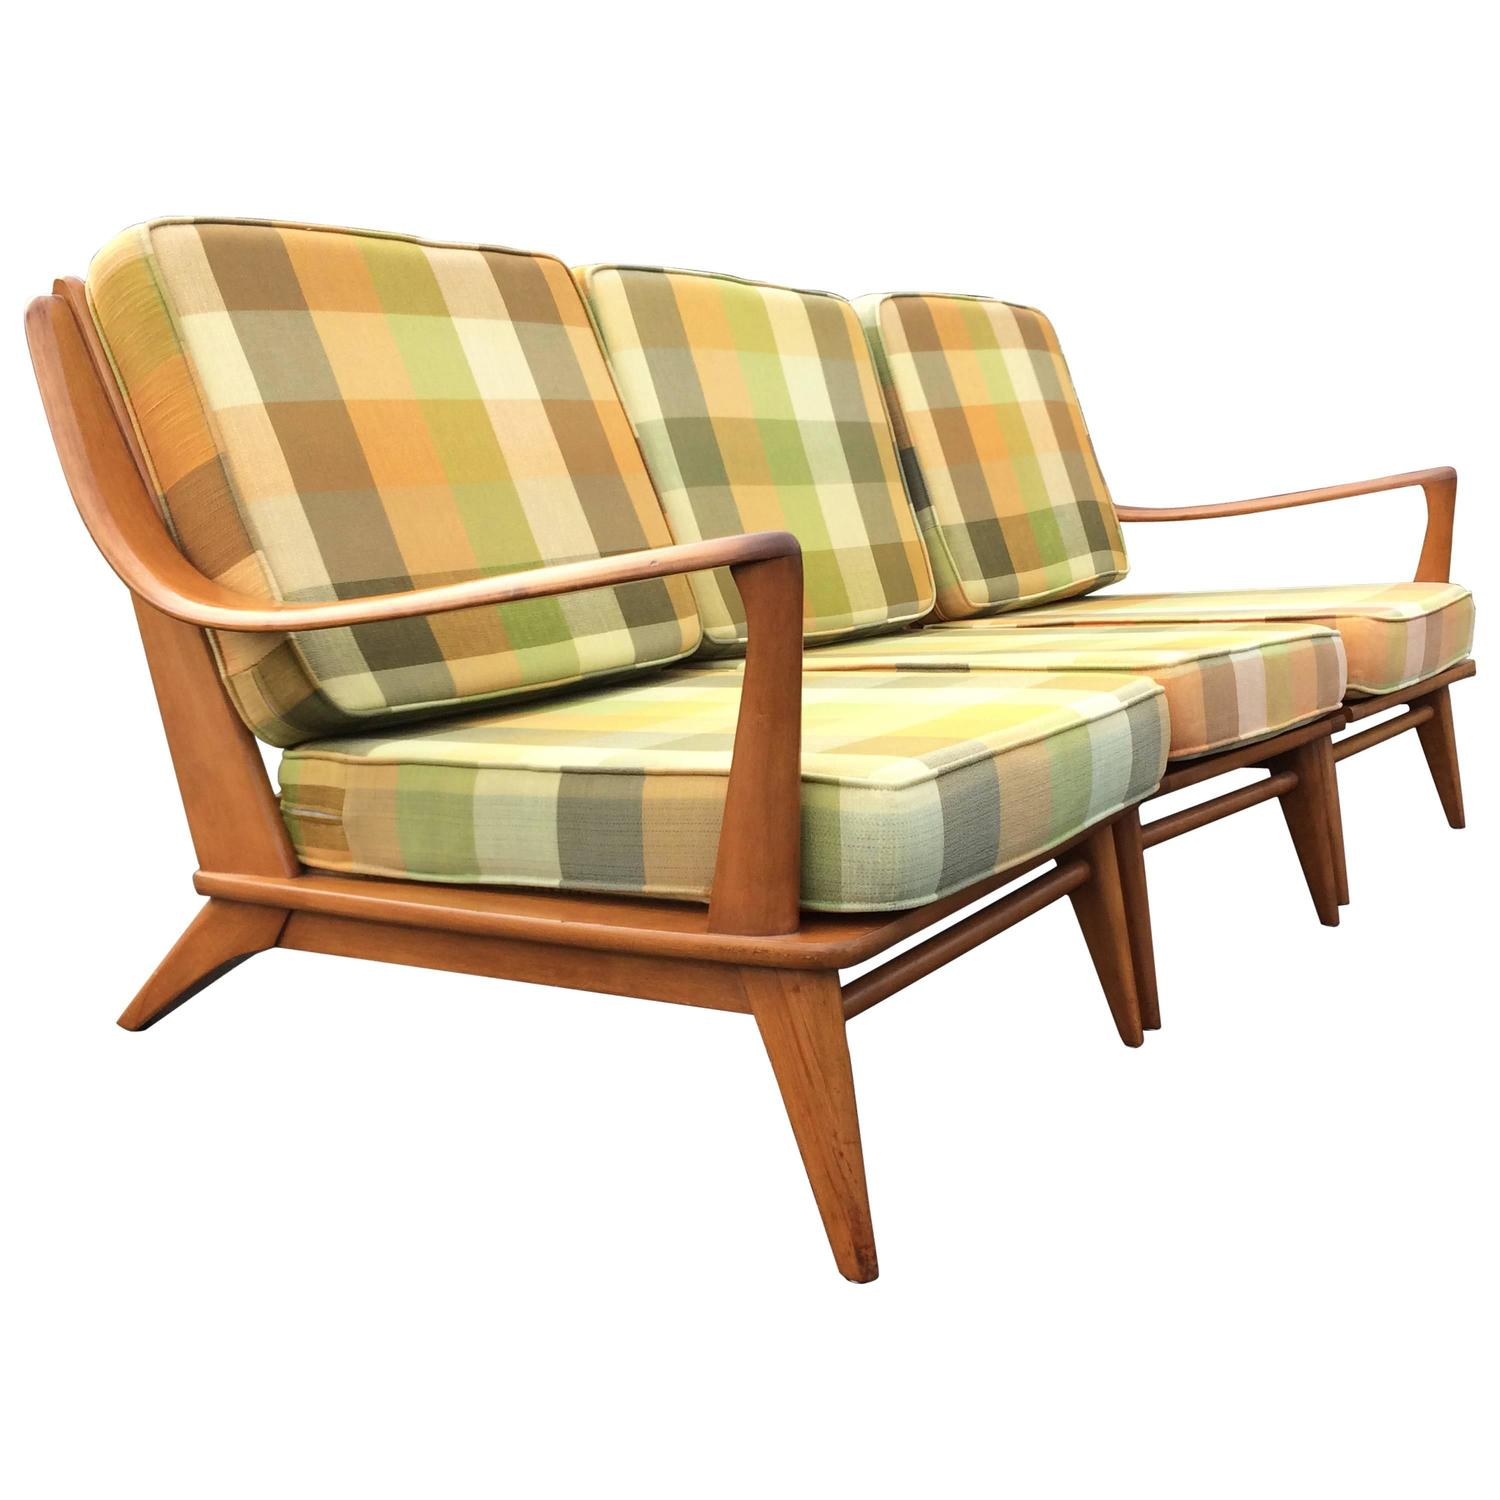 Cool Sofas For Sale: Cool Heywood-Wakefield Sofa, USA, 1950s For Sale At 1stdibs